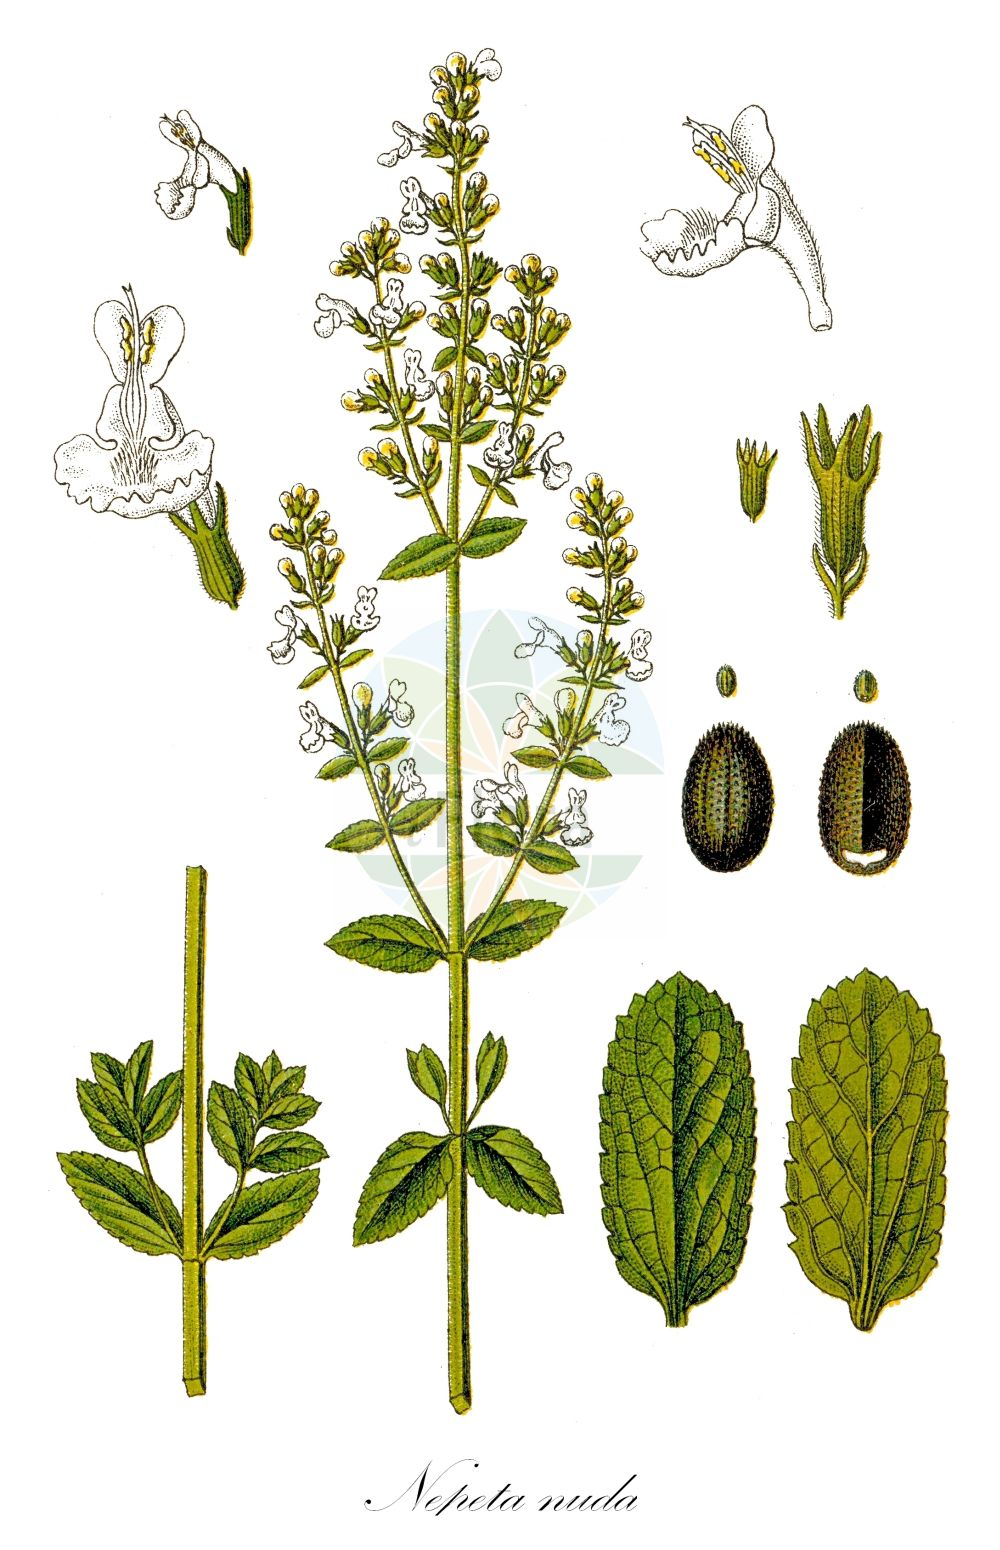 Historische Abbildung von Nepeta nuda (Pannonische Katzenminze - Hairless Cat-mint). Das Bild zeigt Blatt, Bluete, Frucht und Same. ---- Historical Drawing of Nepeta nuda (Pannonische Katzenminze - Hairless Cat-mint).The image is showing leaf, flower, fruit and seed.(Nepeta nuda,Pannonische Katzenminze,Hairless Cat-mint,Cataria nuda,Glechoma nuda,,Kahle Katzenminze,Nepeta,Katzenminze,Catnip,Lamiaceae,Lippenbluetengewaechse;Lippenbluetler,Nettle family,Blatt,Bluete,Frucht,Same,leaf,flower,fruit,seed,Sturm (1796f))